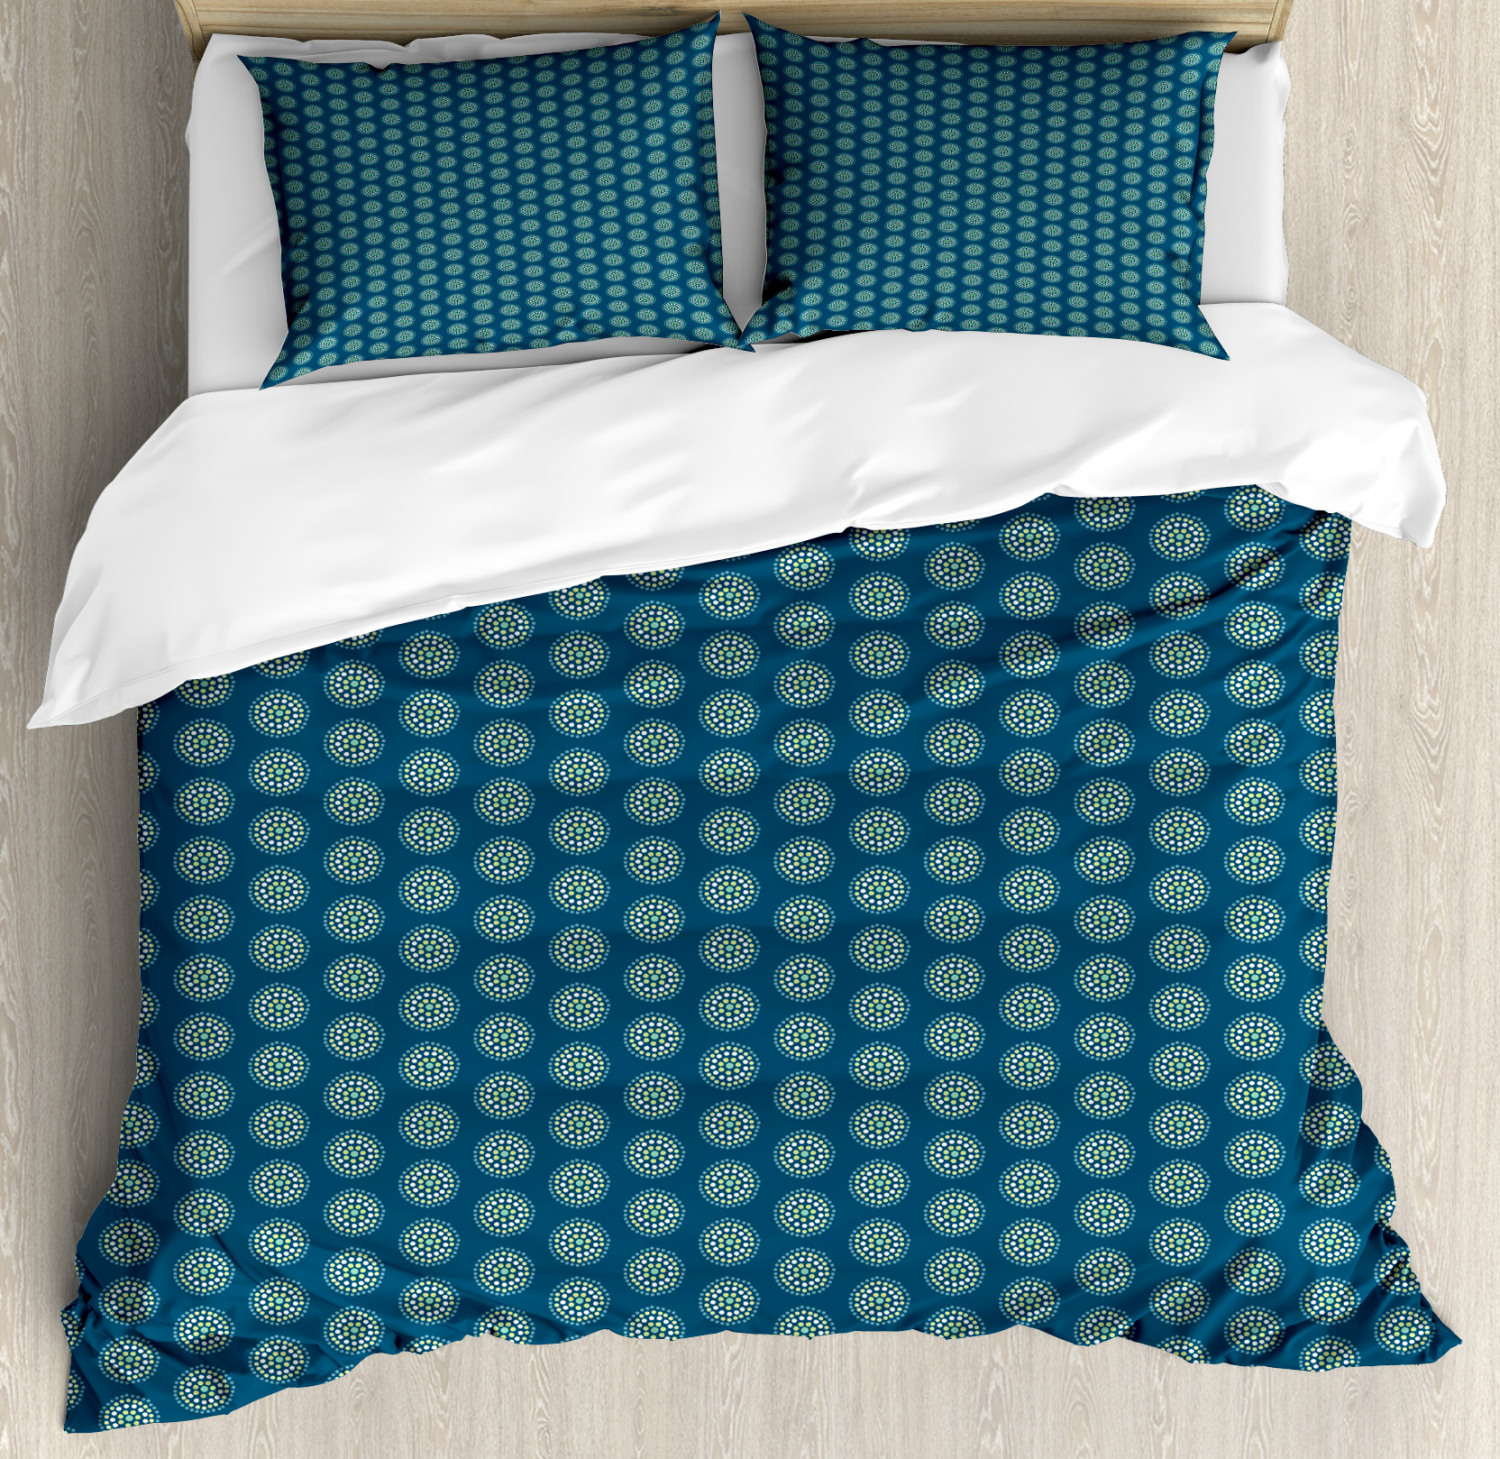 Geometric Pattern Duvet Cover Set Twin Queen King Sizes